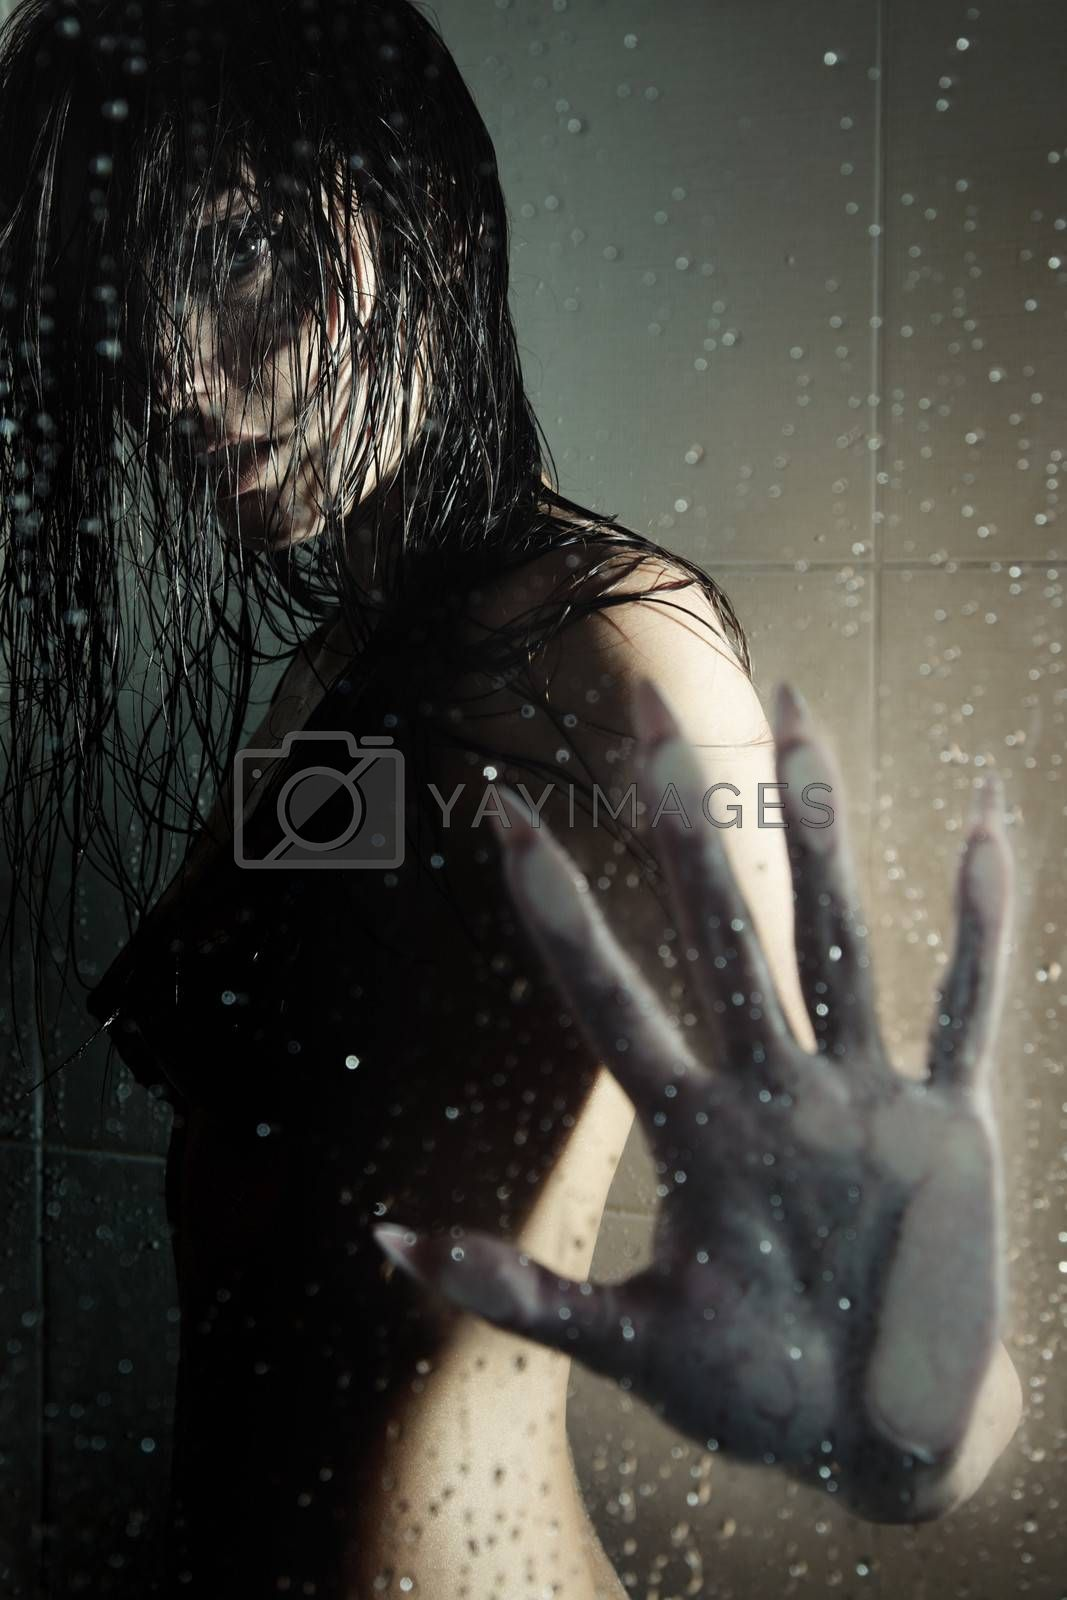 Female witch standing in the shower room behind the wet glass. Artistic darkness and texture added